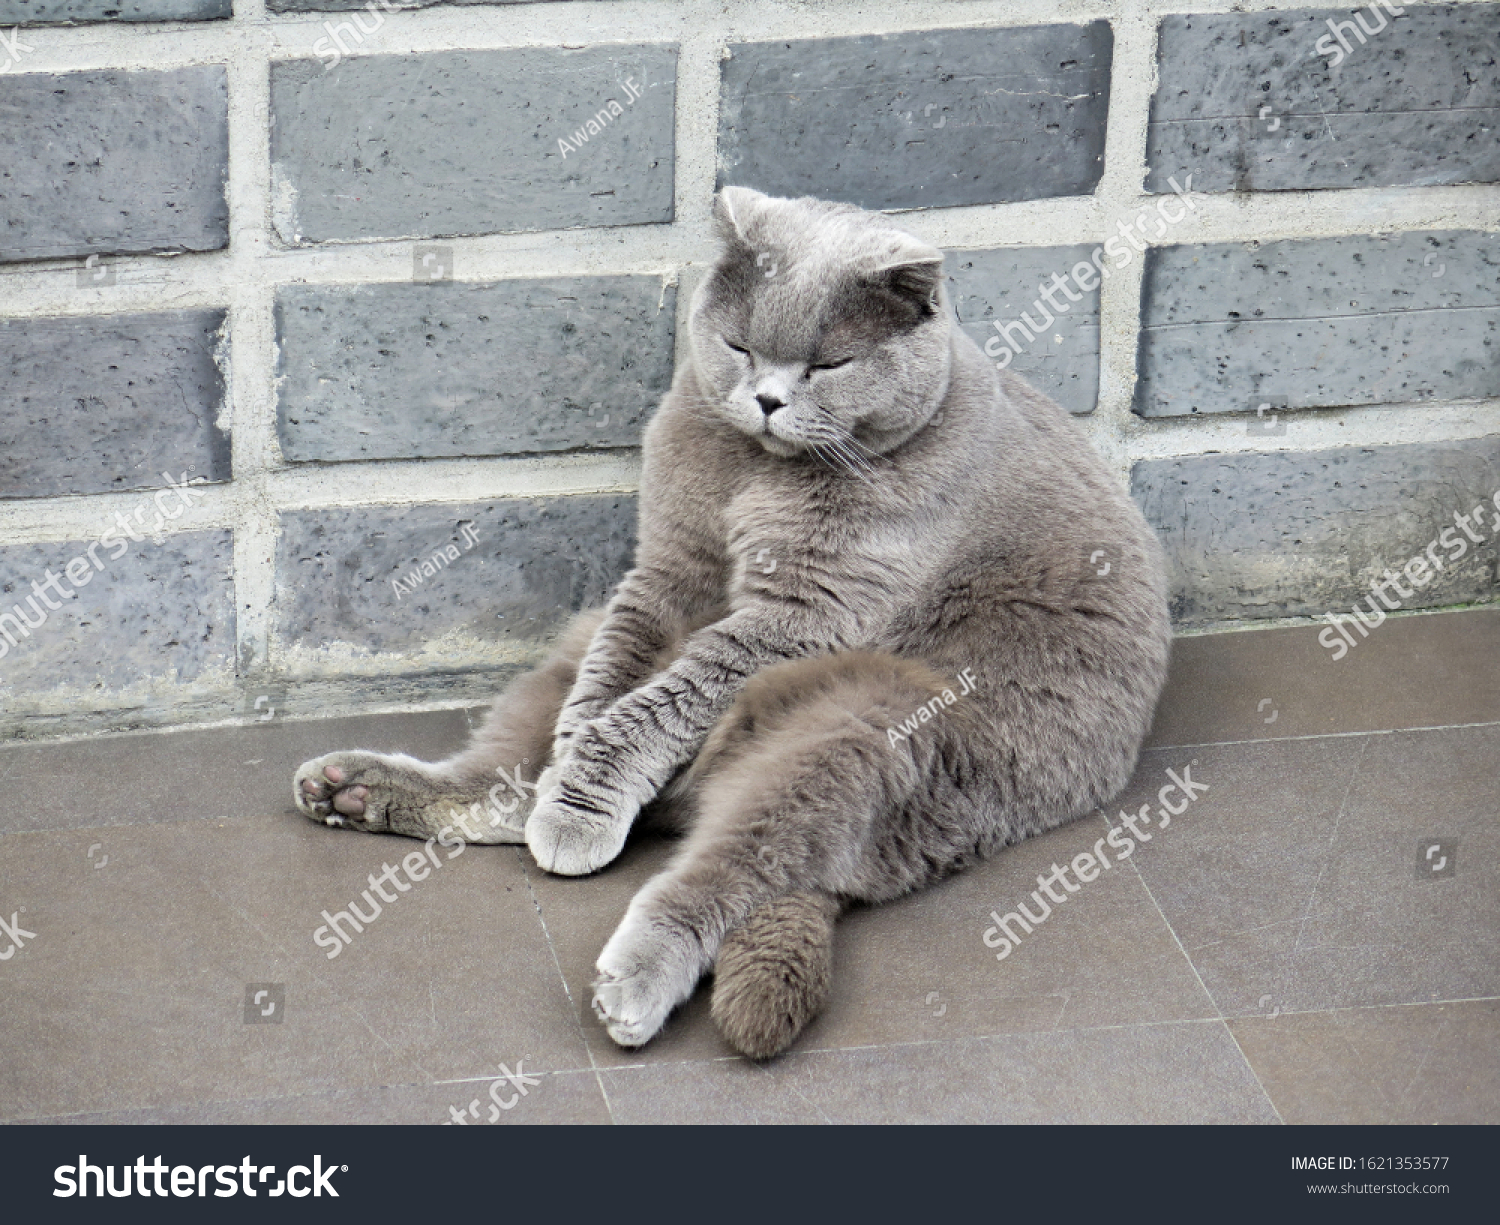 stock-photo-cute-grey-cat-sitting-manwis